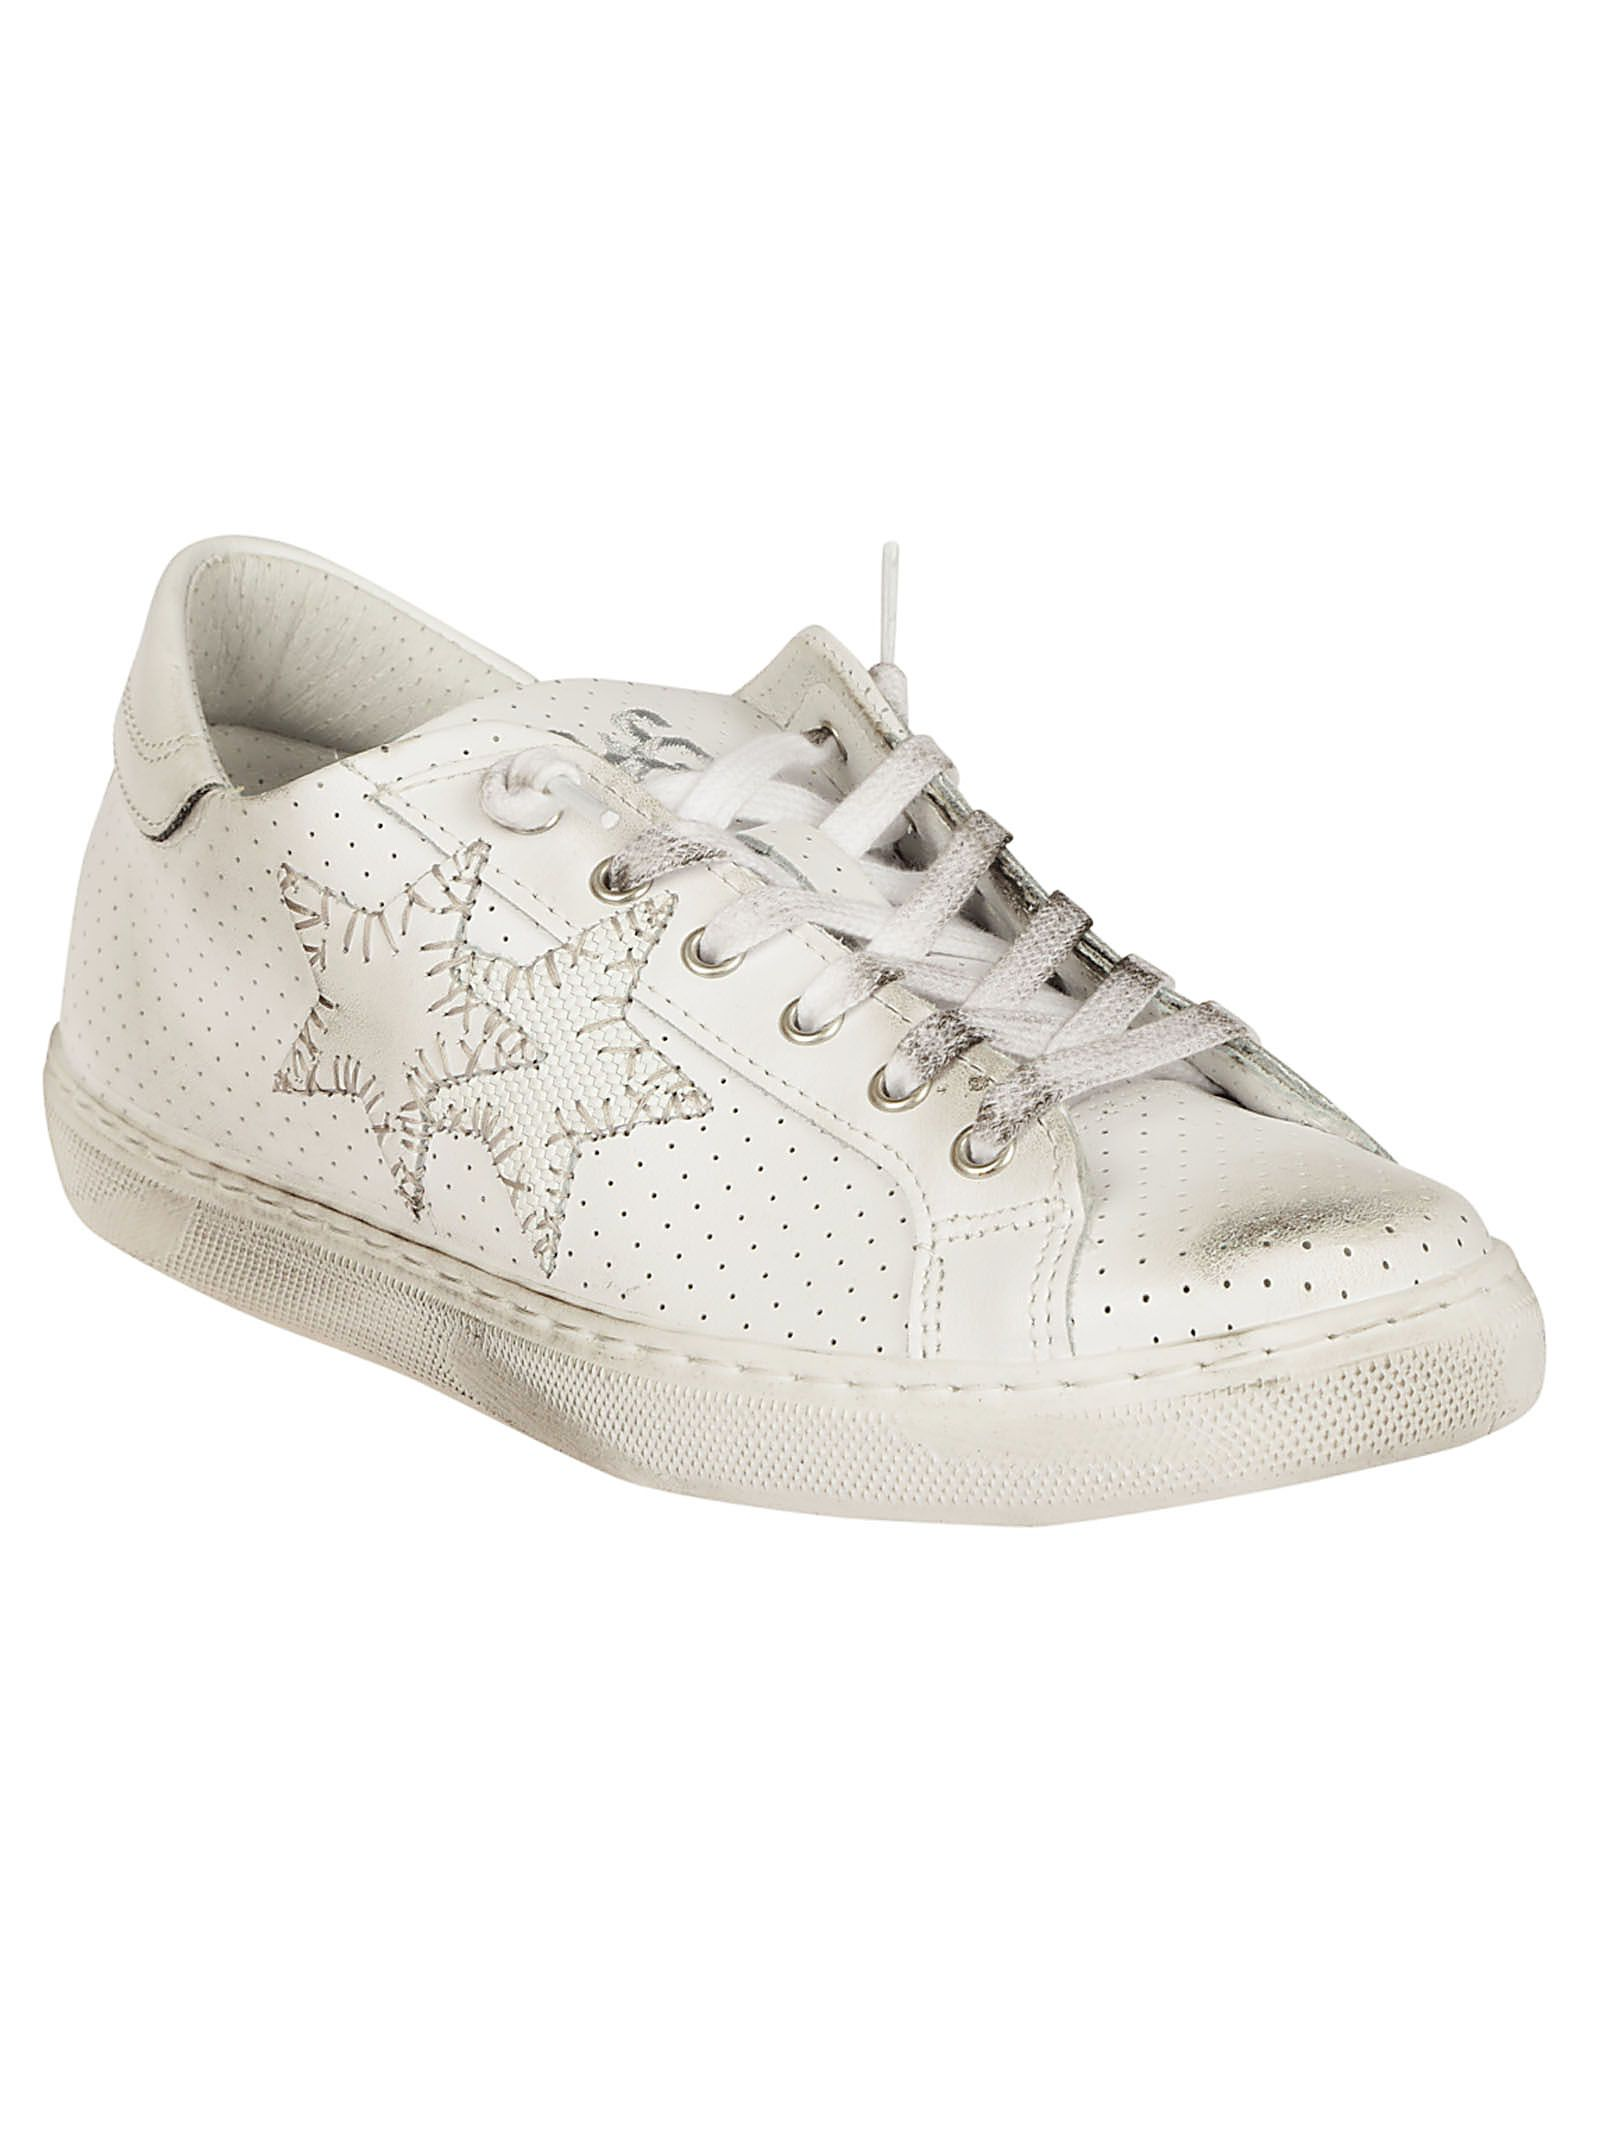 2STAR Perforated Sneakers Lowest Price Cheap Price E5YPfrA6O